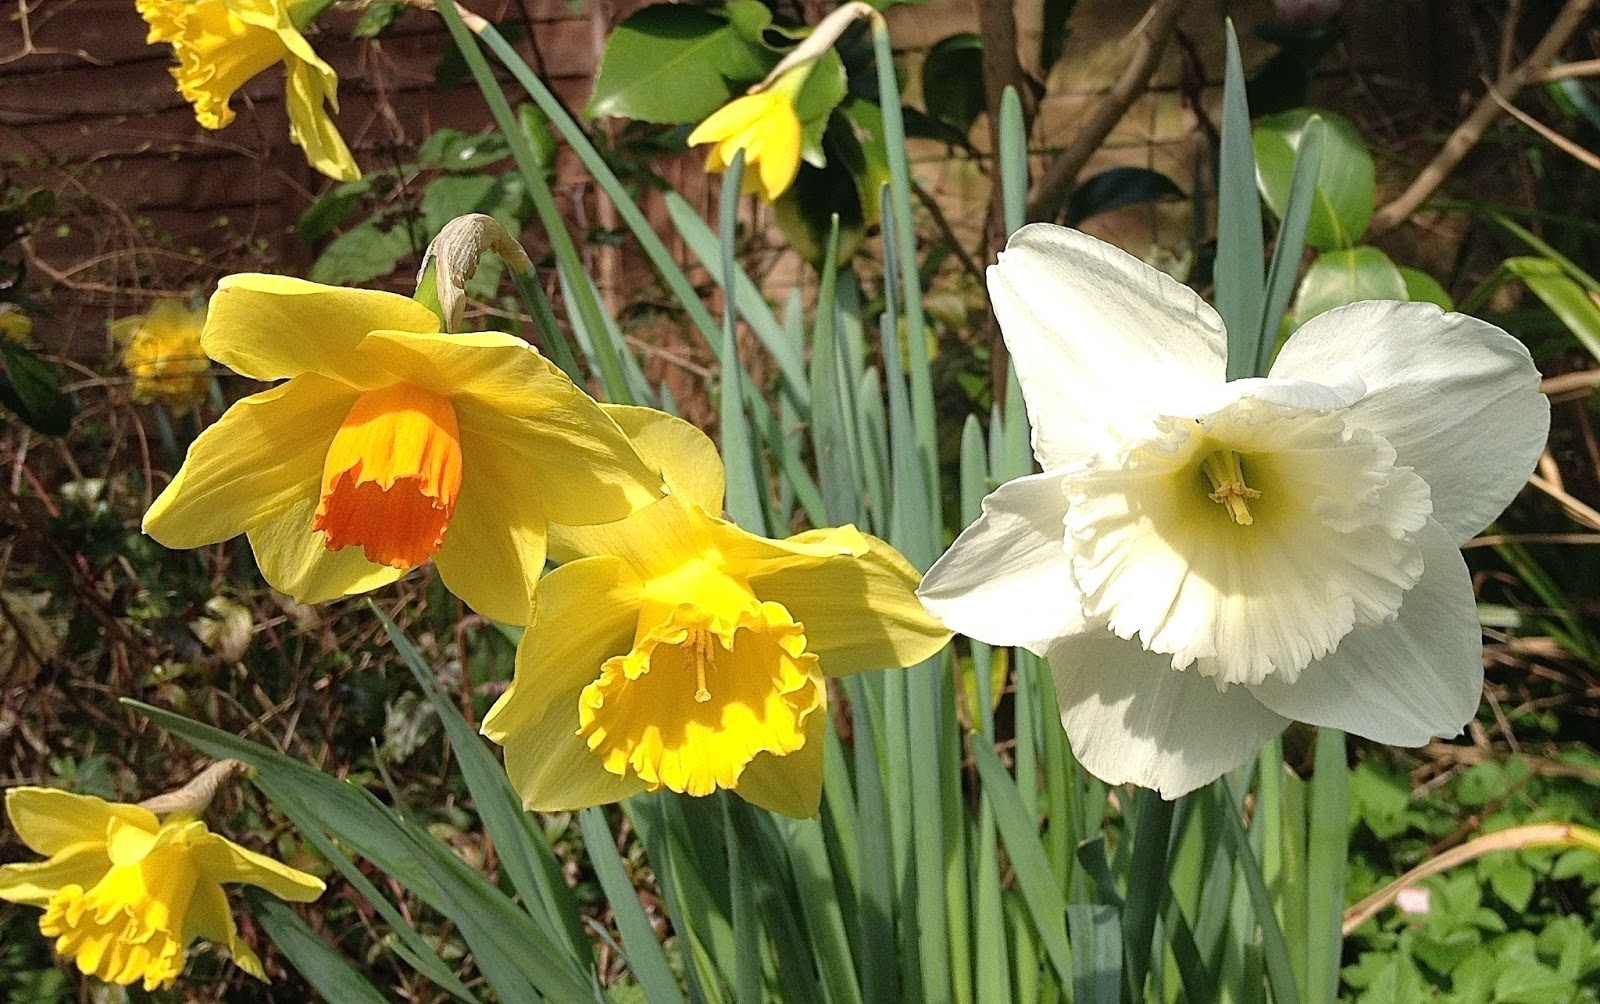 Travel with angela lansbury spring flowers daffodils in london this year in london in march you can see yellow daffodils white and pink camellias and yellow forsythia bushes and pink cherry blossom on the trees mightylinksfo